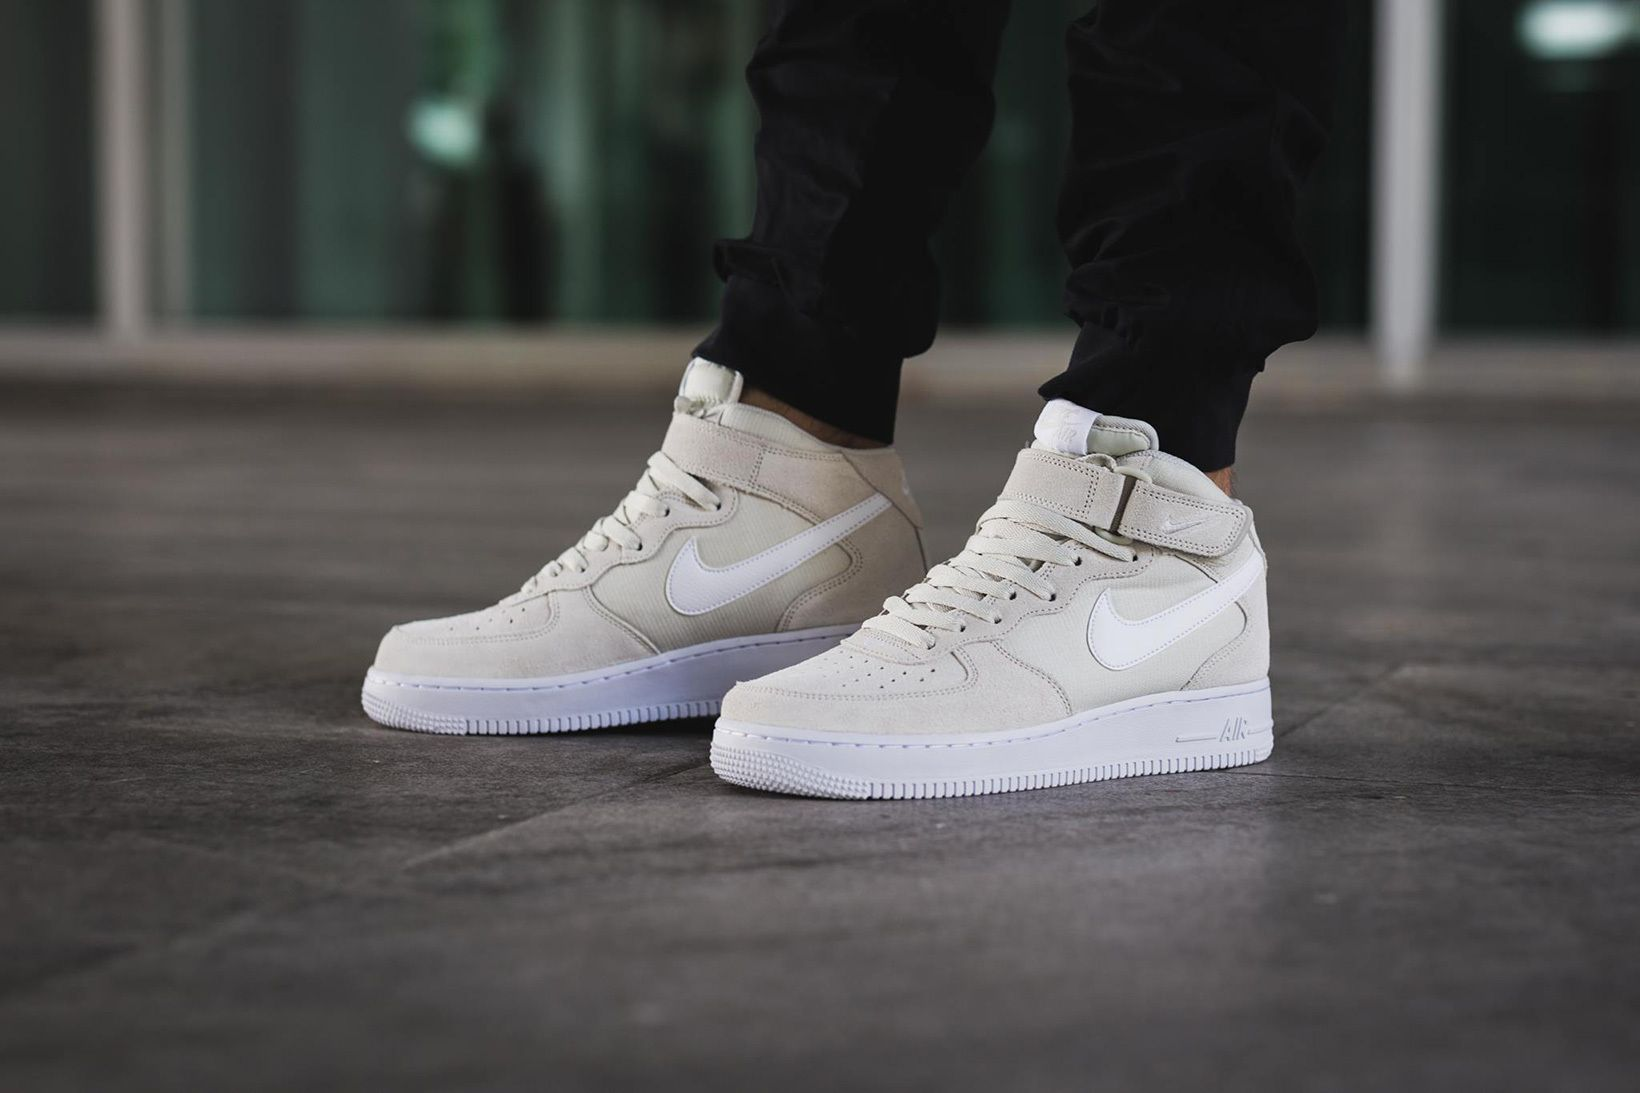 The Nike Air Force 1 Mid Gets a Clean